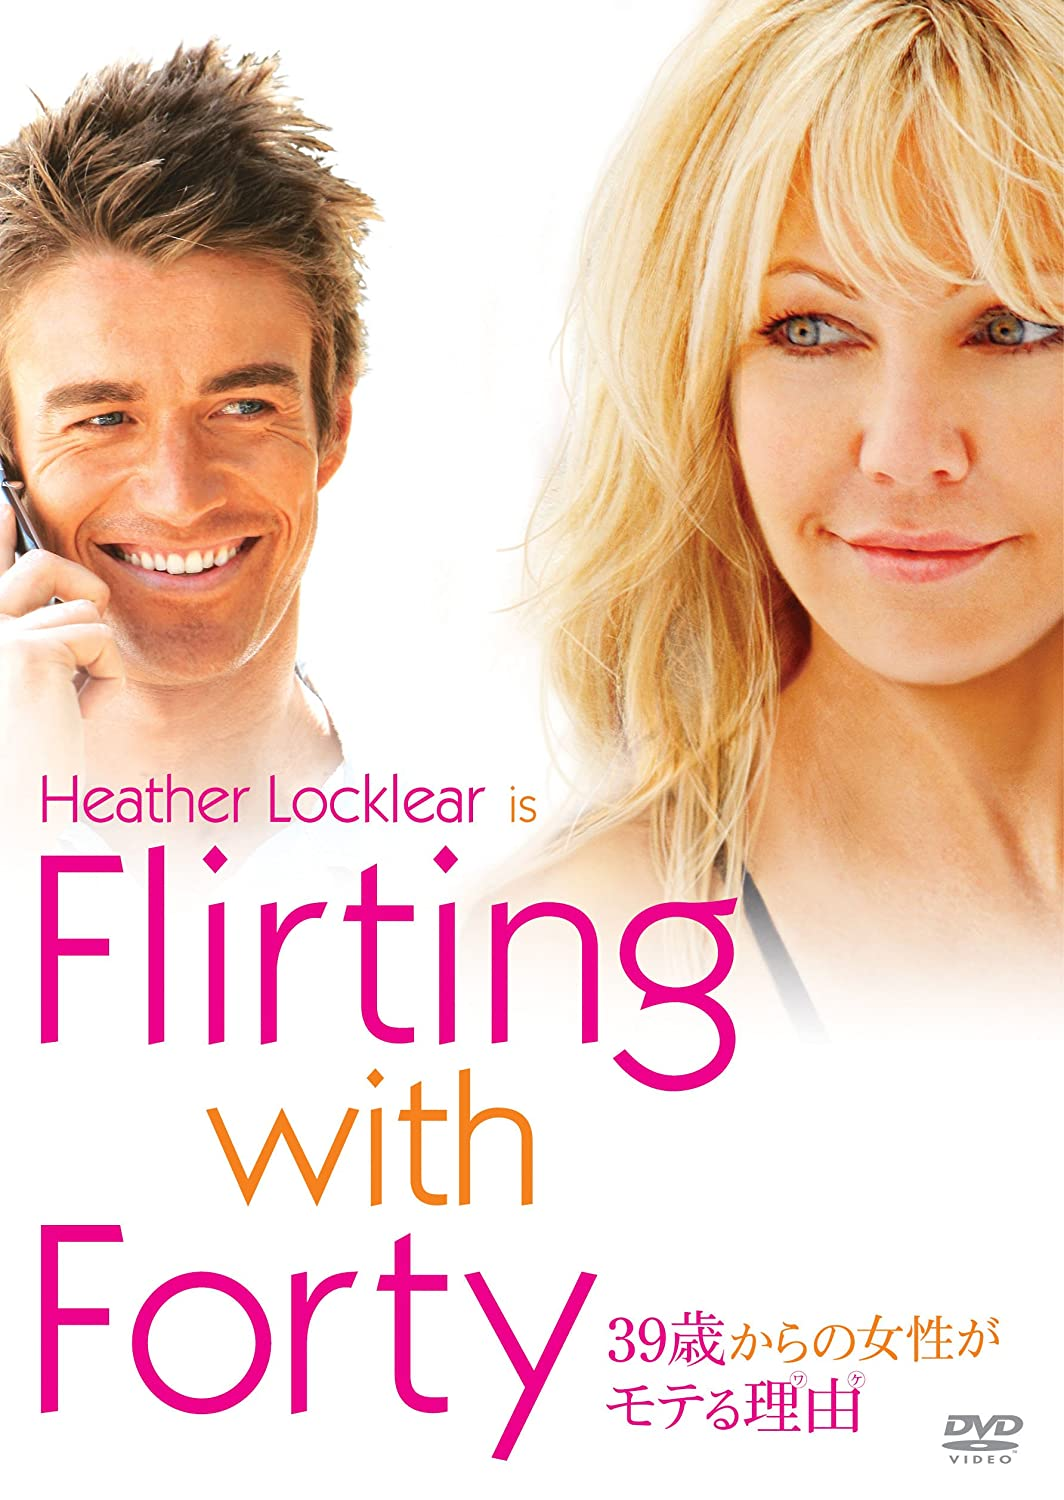 flirting with forty heather locklear pics leaked video photo